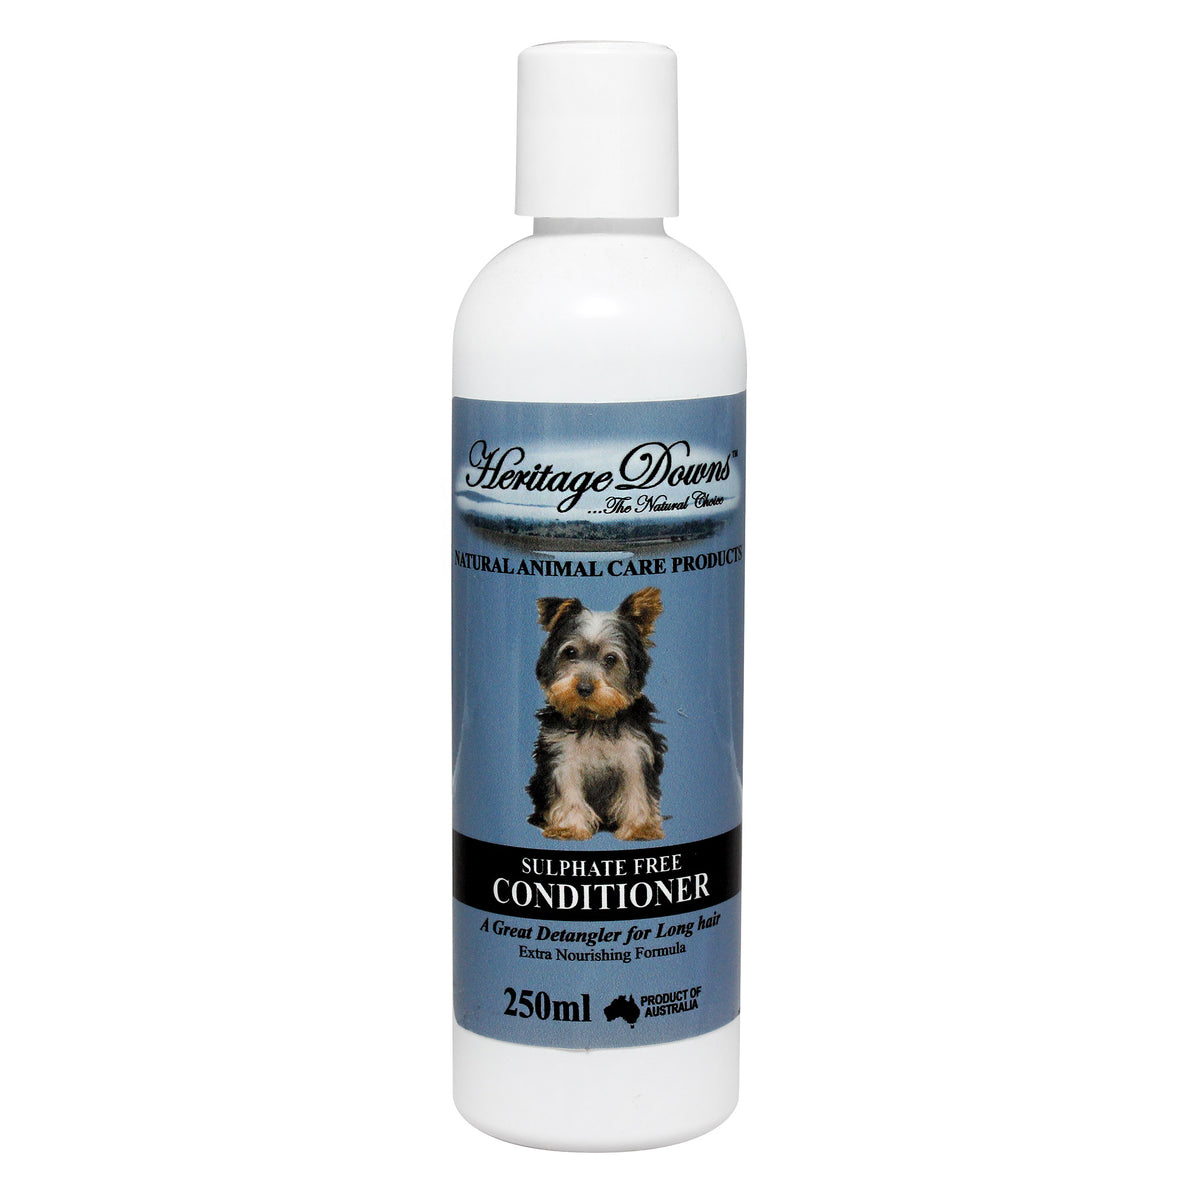 Heritage Downs Sulphate Free Pet Conditioner